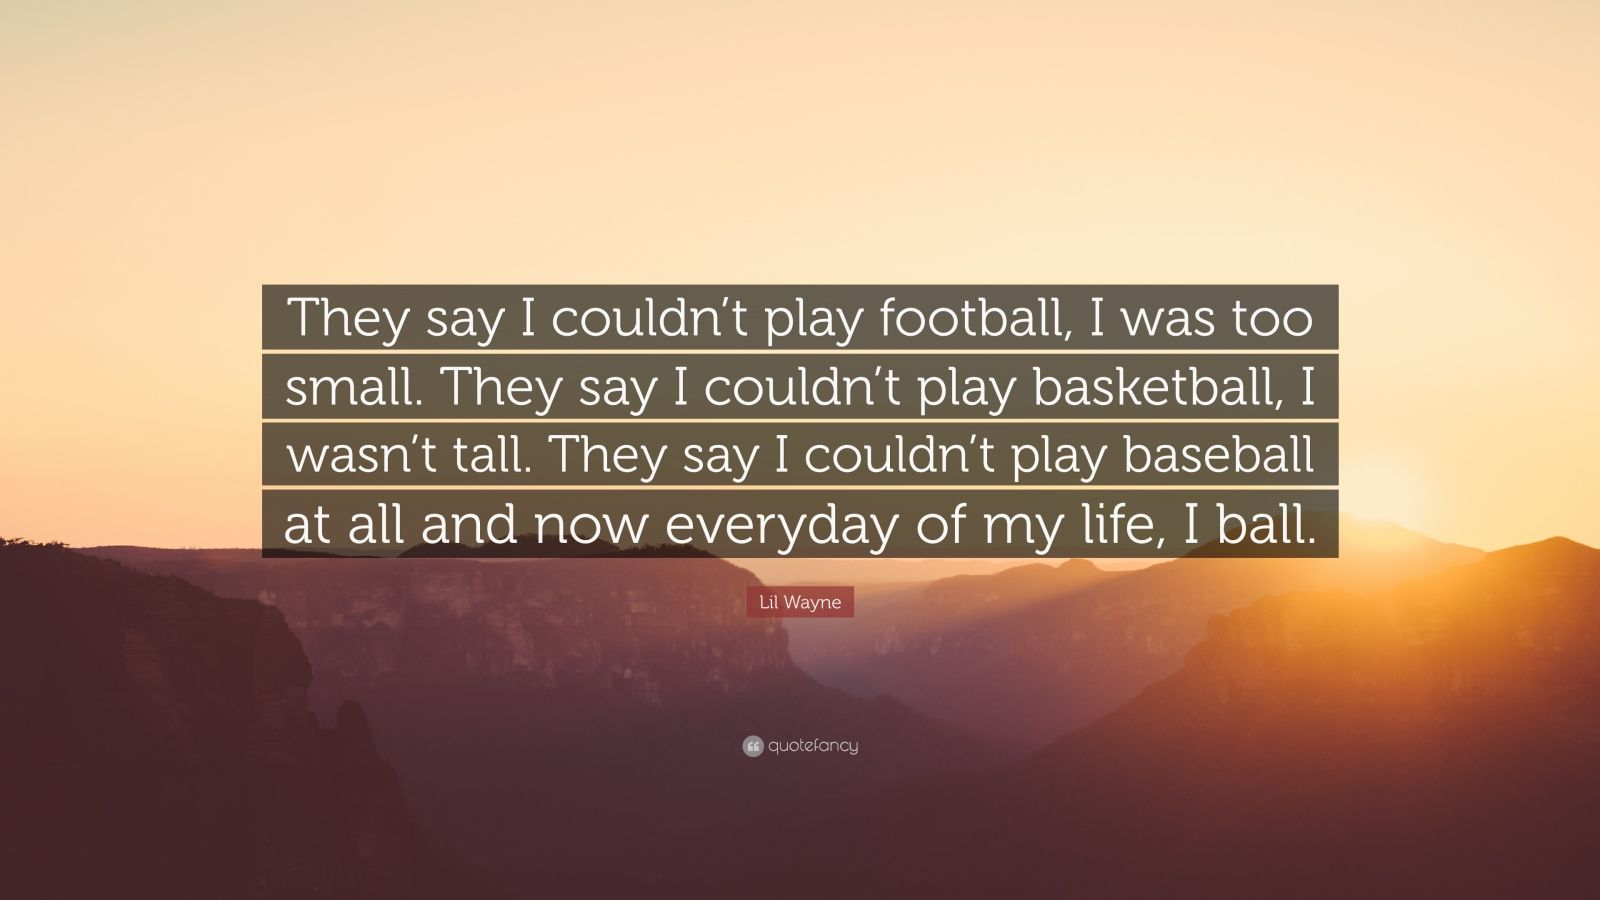 """Lil Wayne Quote: """"They say I couldn't play football, I was too small. They say I couldn't play basketball, I wasn't tall. They say I couldn't play baseball at all and now everyday of my life, I ball."""""""